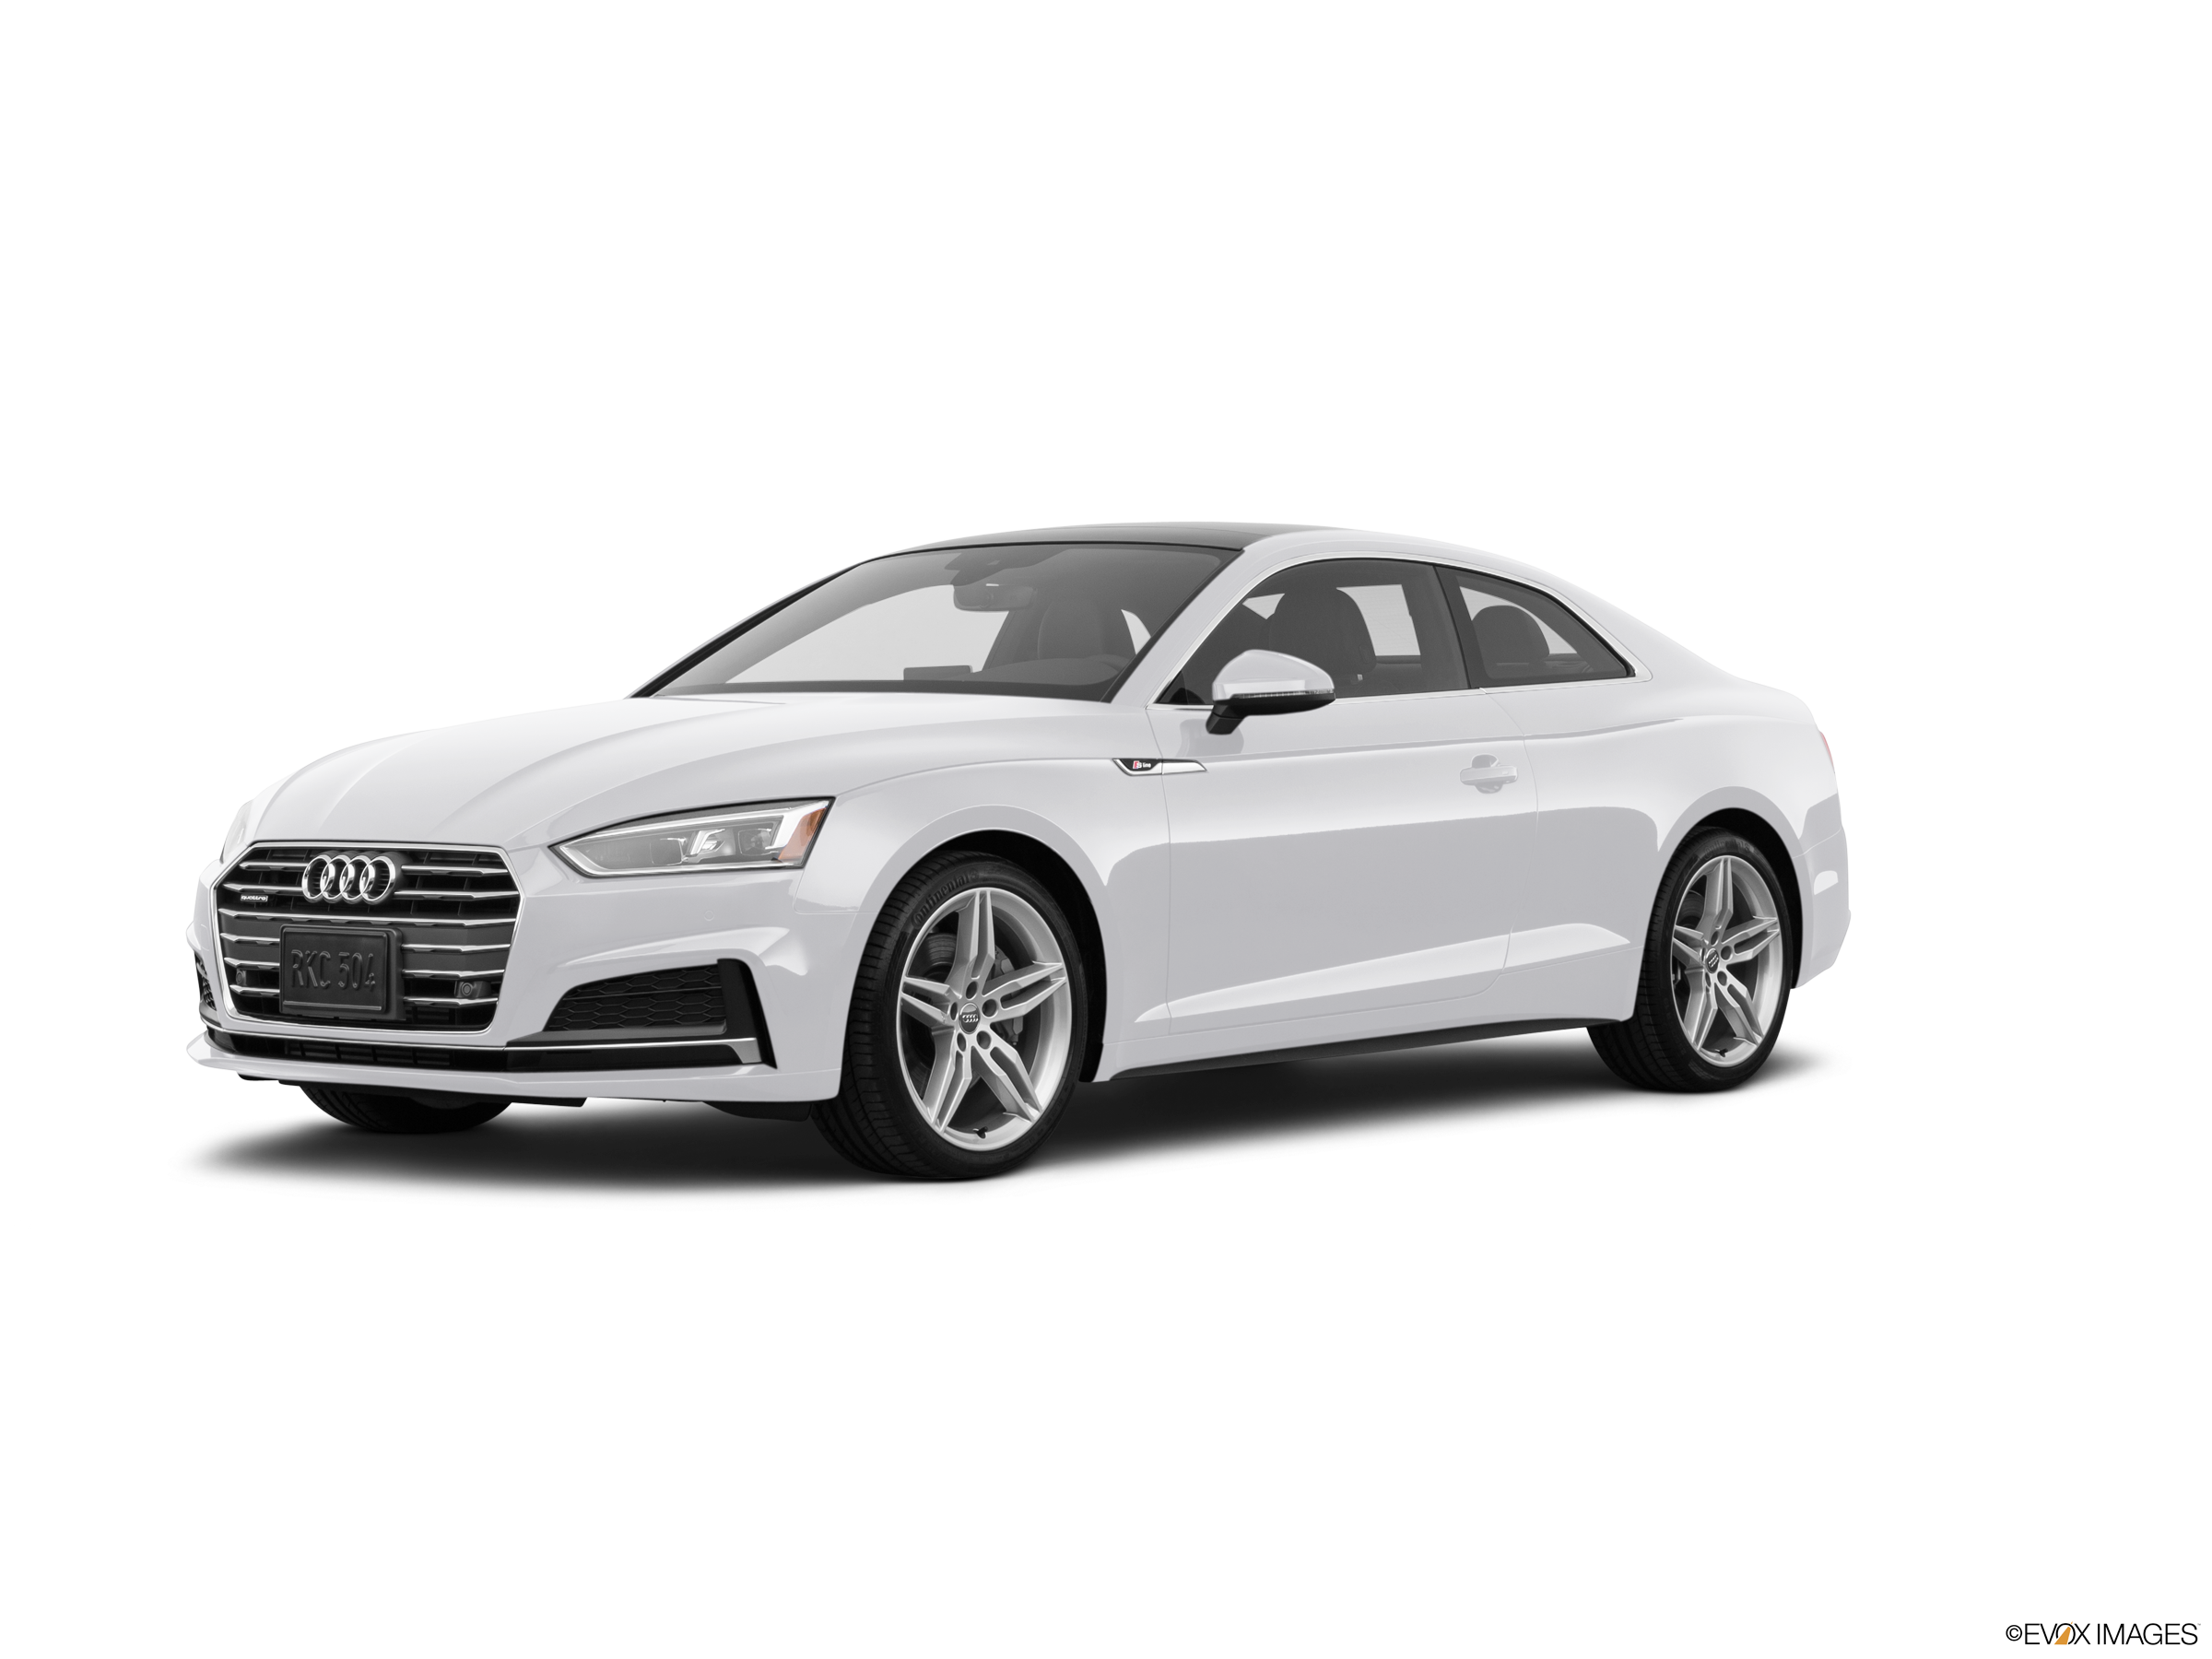 Top Expert Rated Coupes of 2018 - 2018 Audi A5